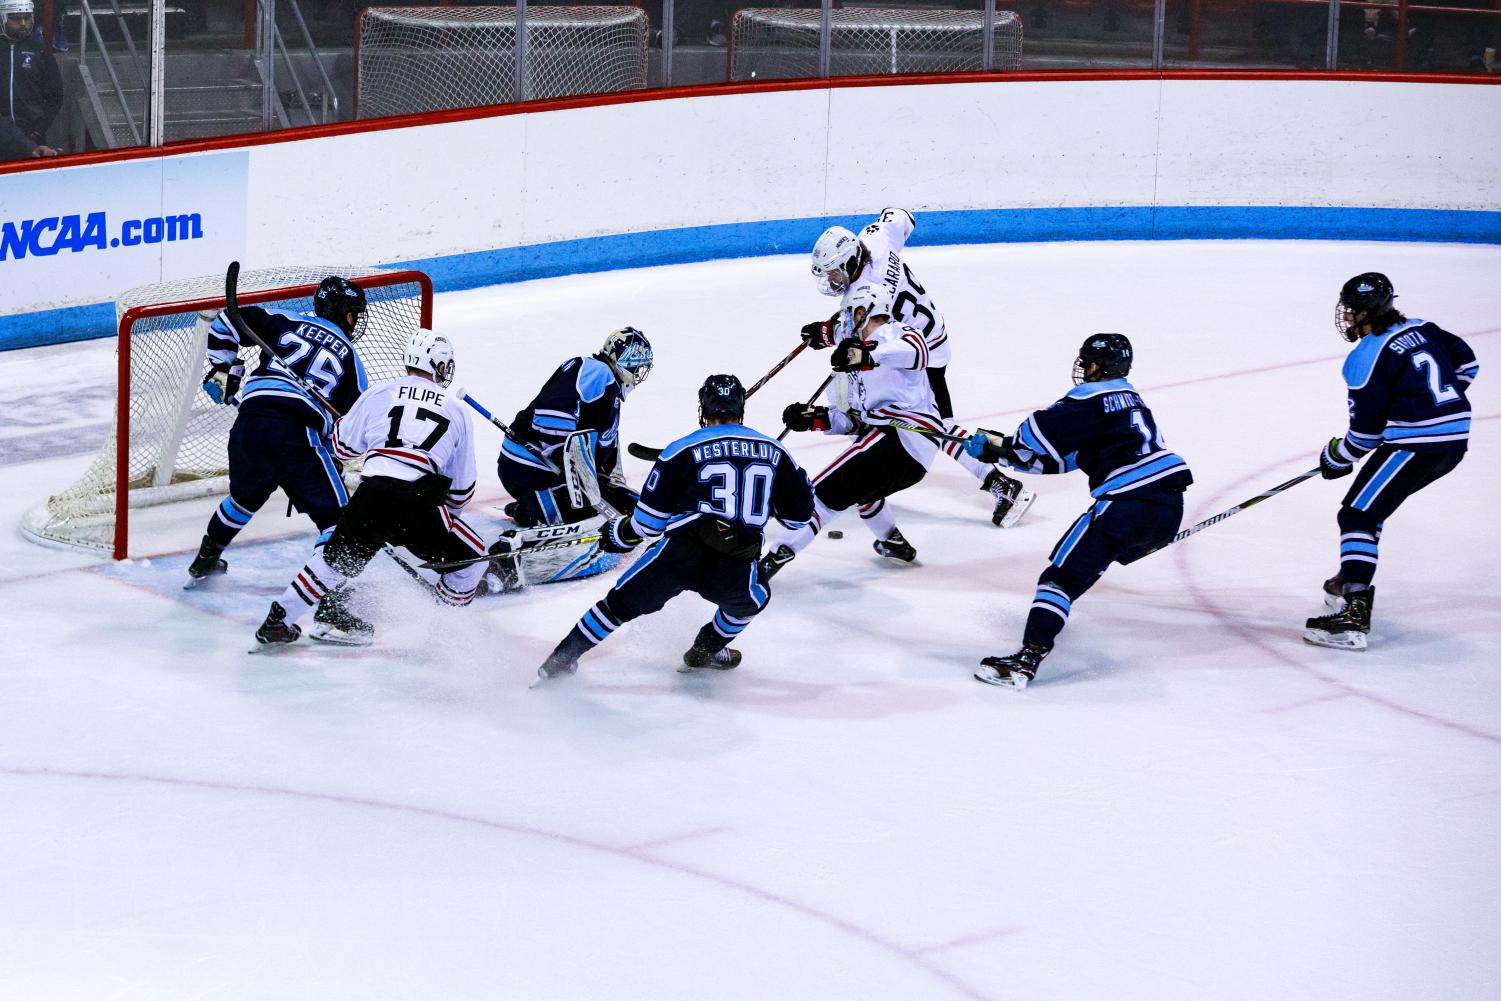 NU forwards Tyler Madden (9) and Liam Pecararo (39) scramble for a loose puck in front of the Maine net.